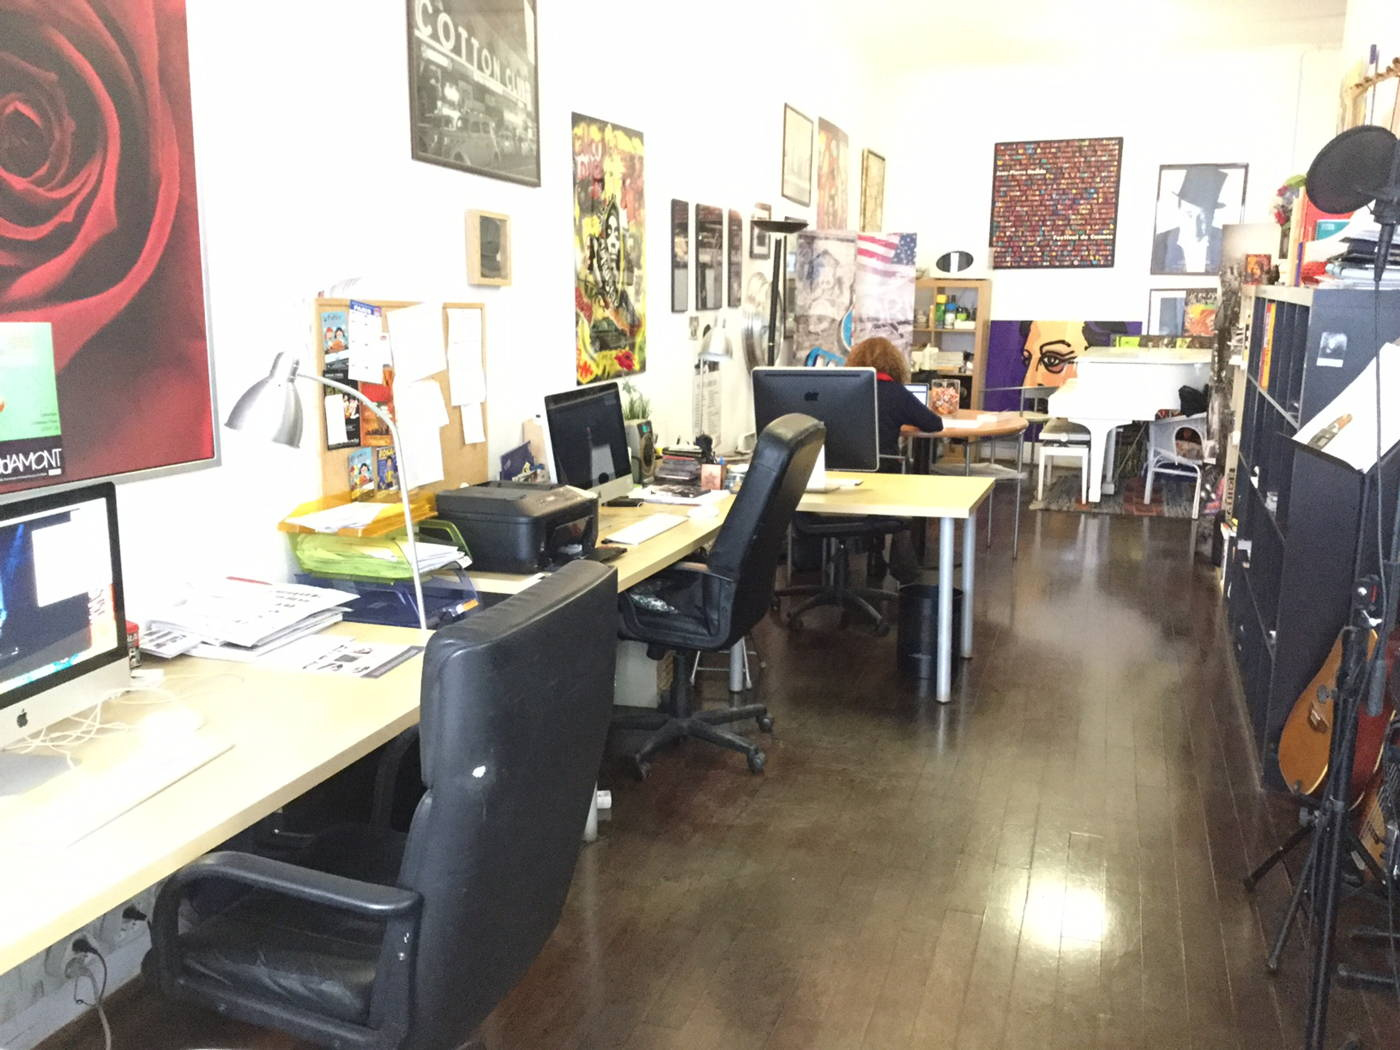 Location bureau paris : jusquà 4 postes dans open space paris 17è